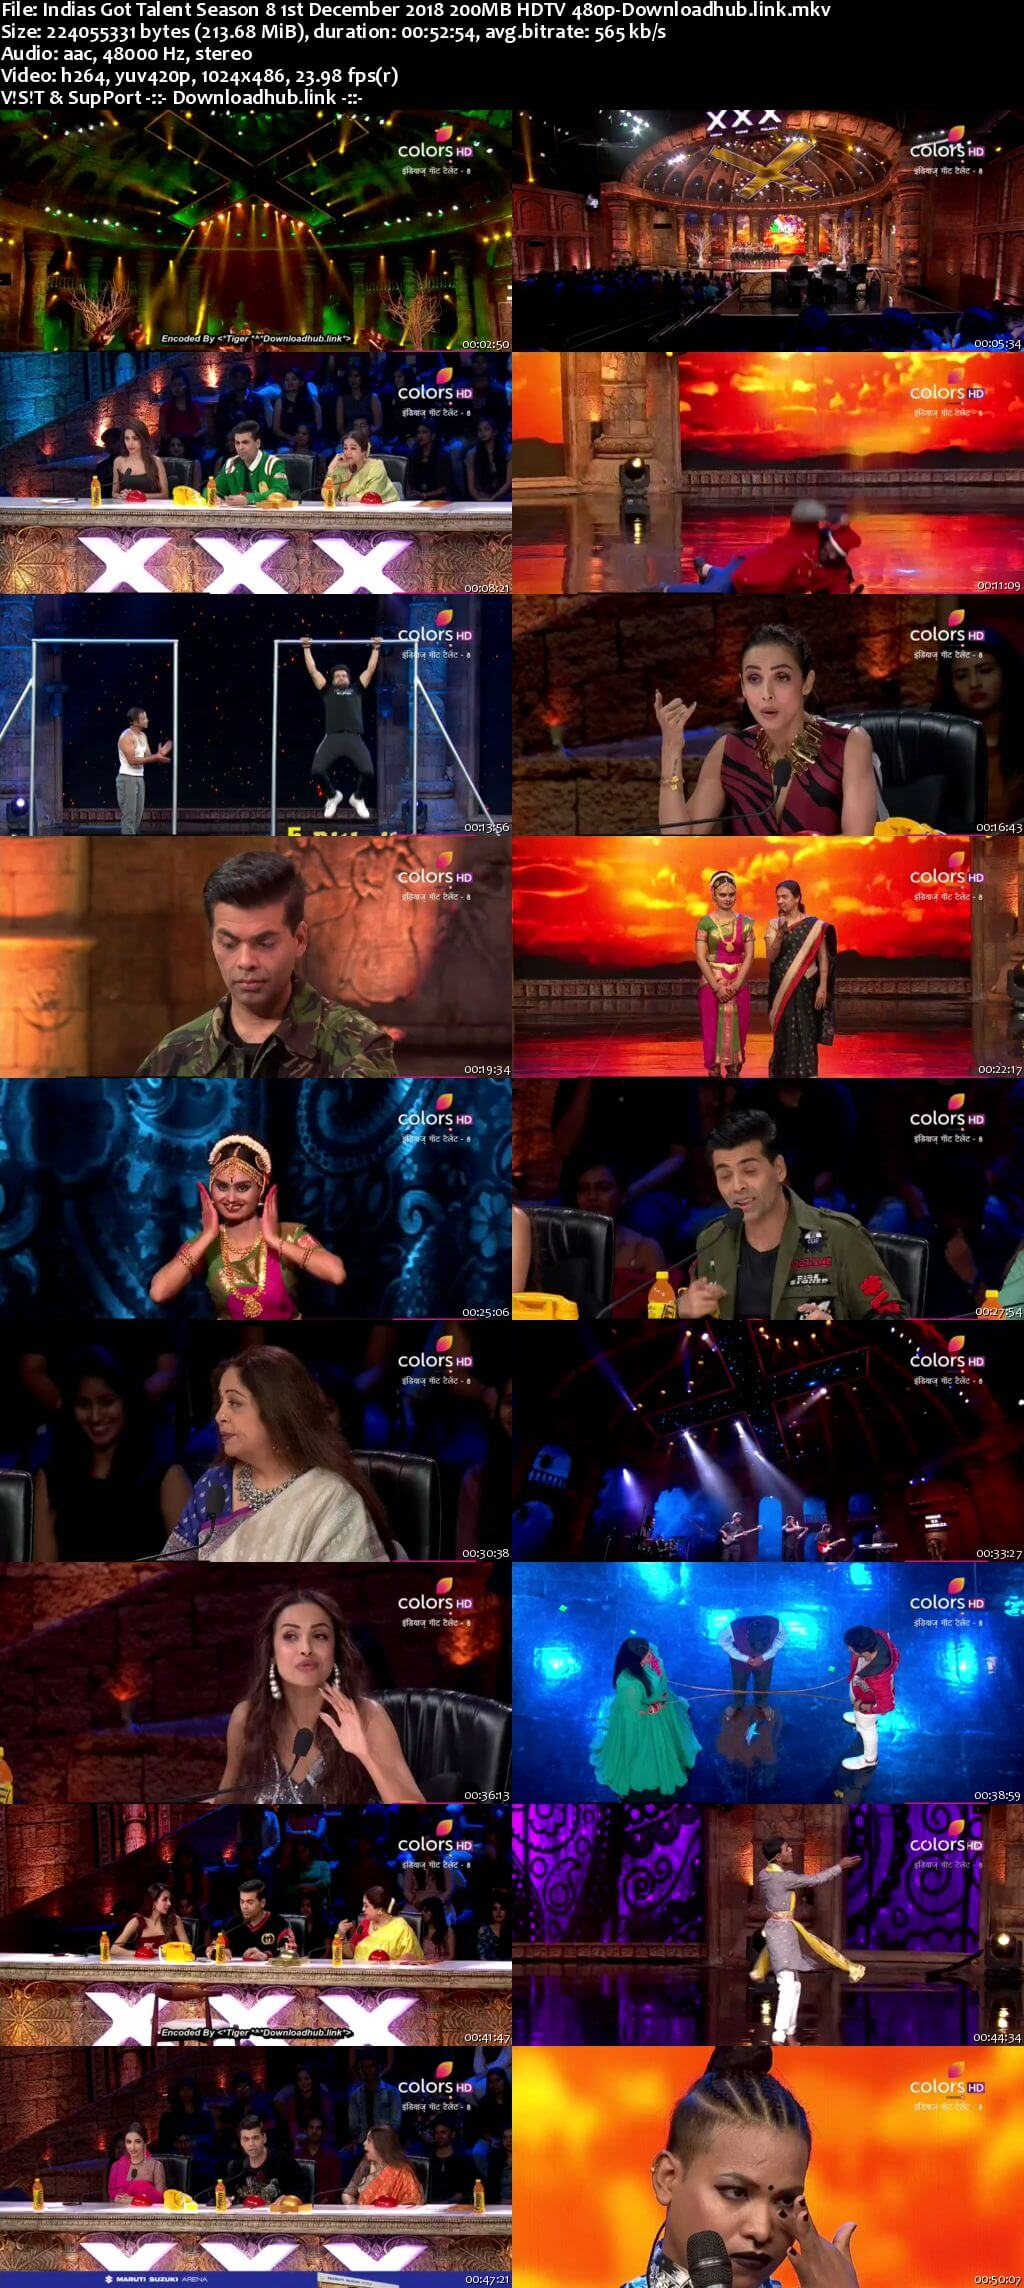 Indias Got Talent Season 8 01 December 2018 Episode 13 HDTV 480p